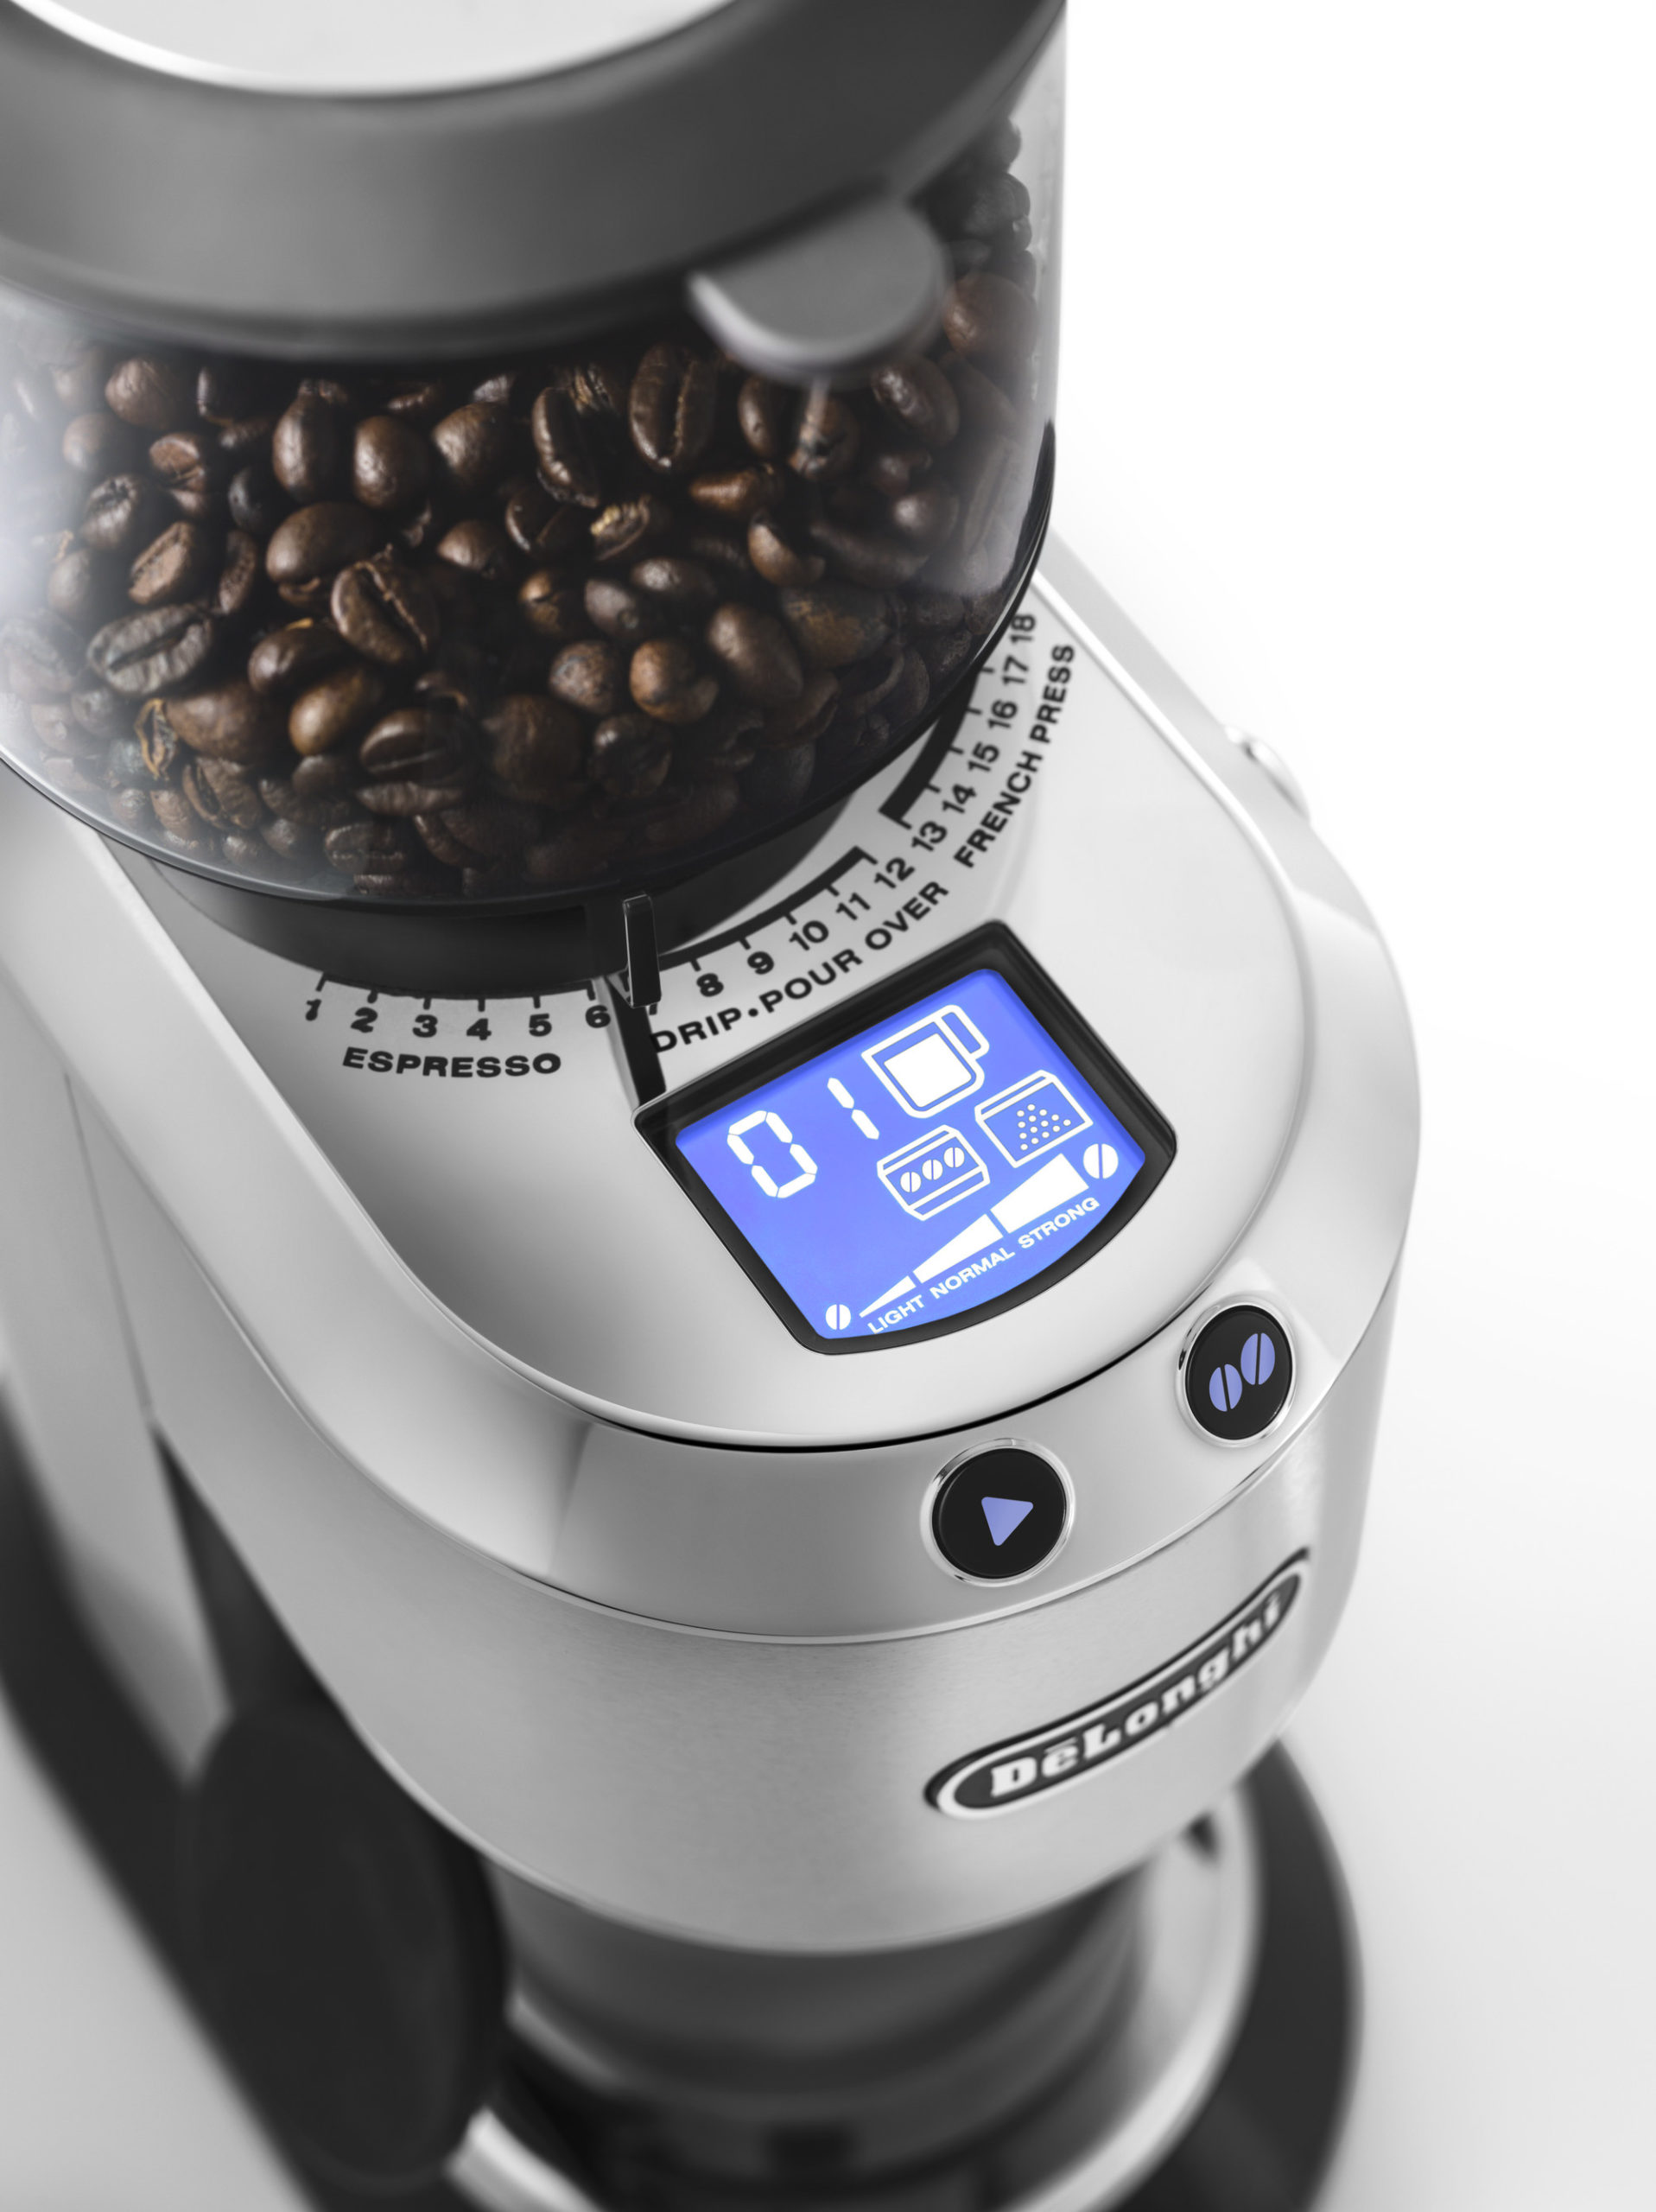 top view of a coffee grinding machine with an LCD display